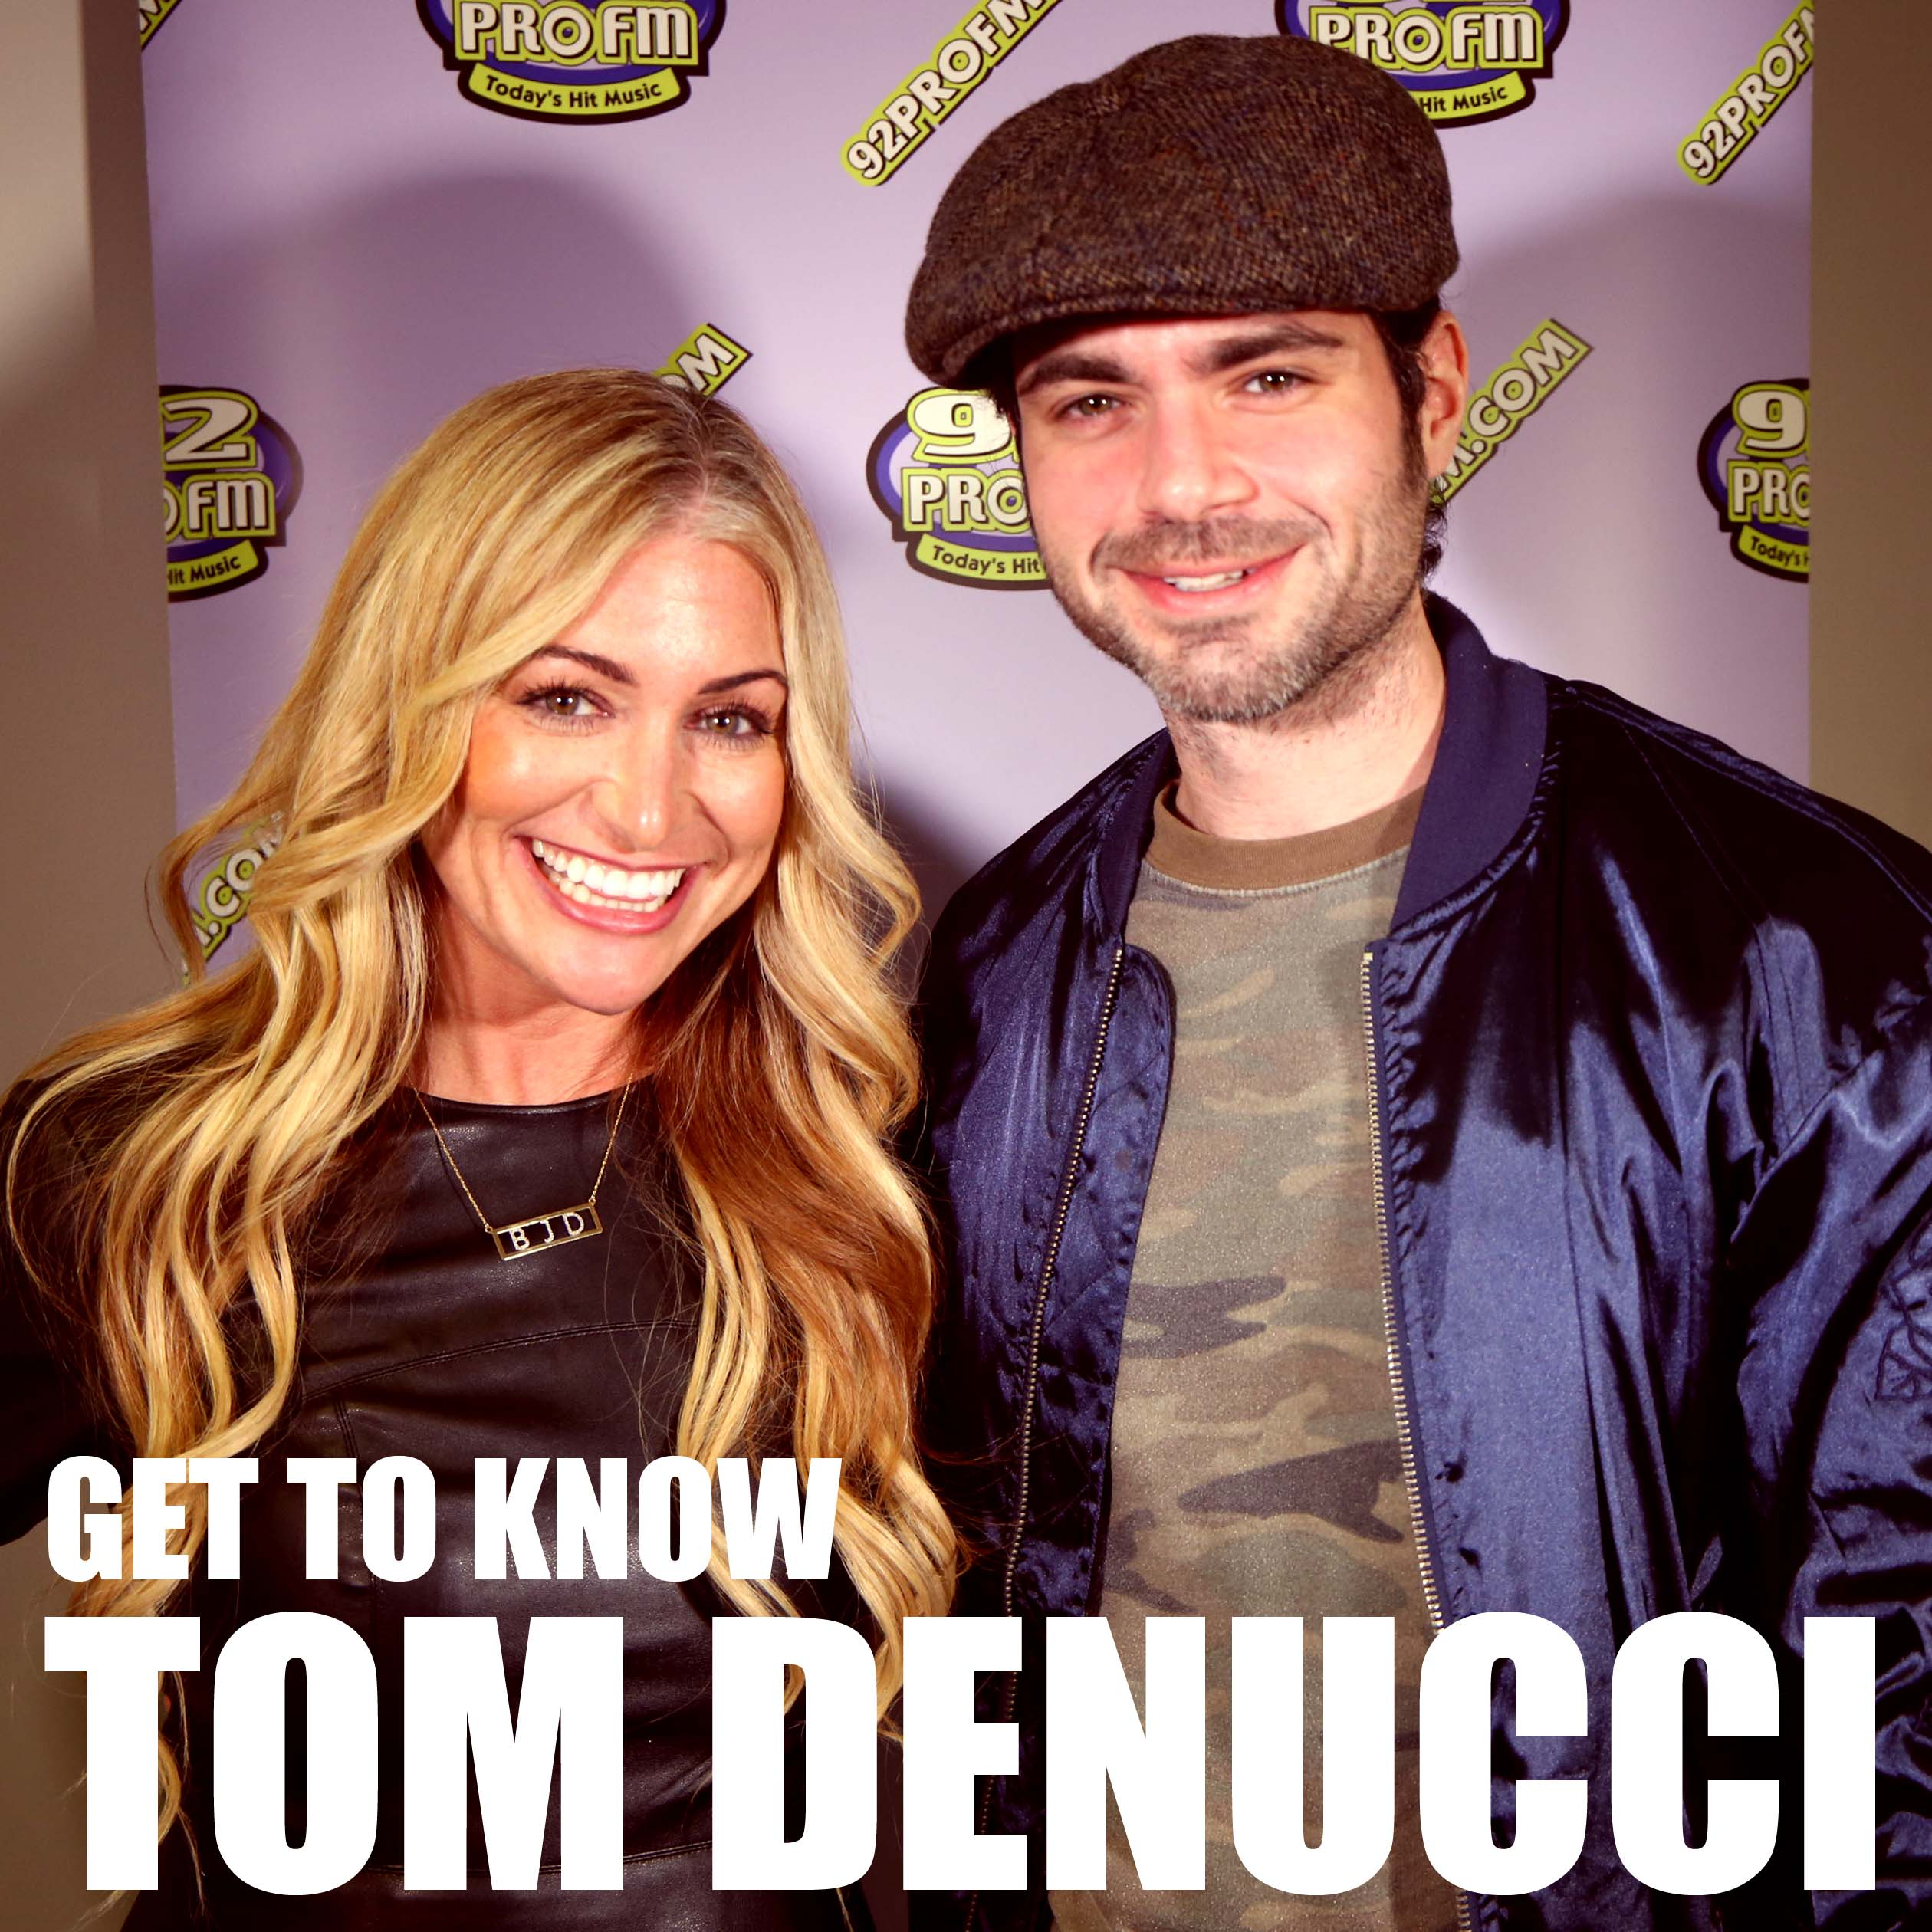 get-to-know-tom-denucci1